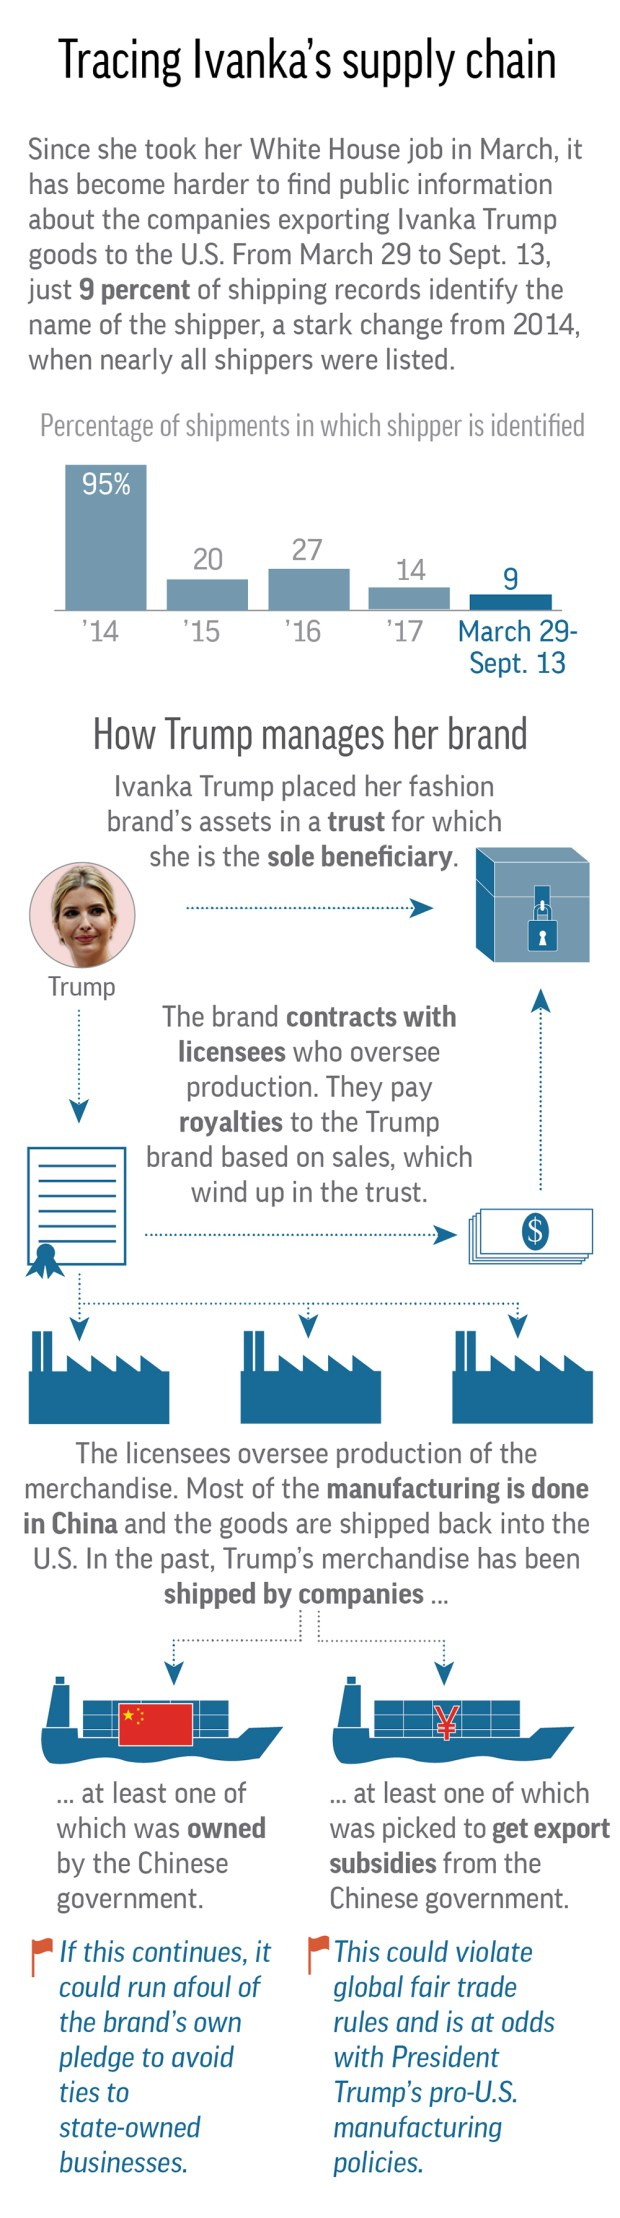 Graphic shows details of Ivanka Trump's brand arrangements with overseas manufacturers.